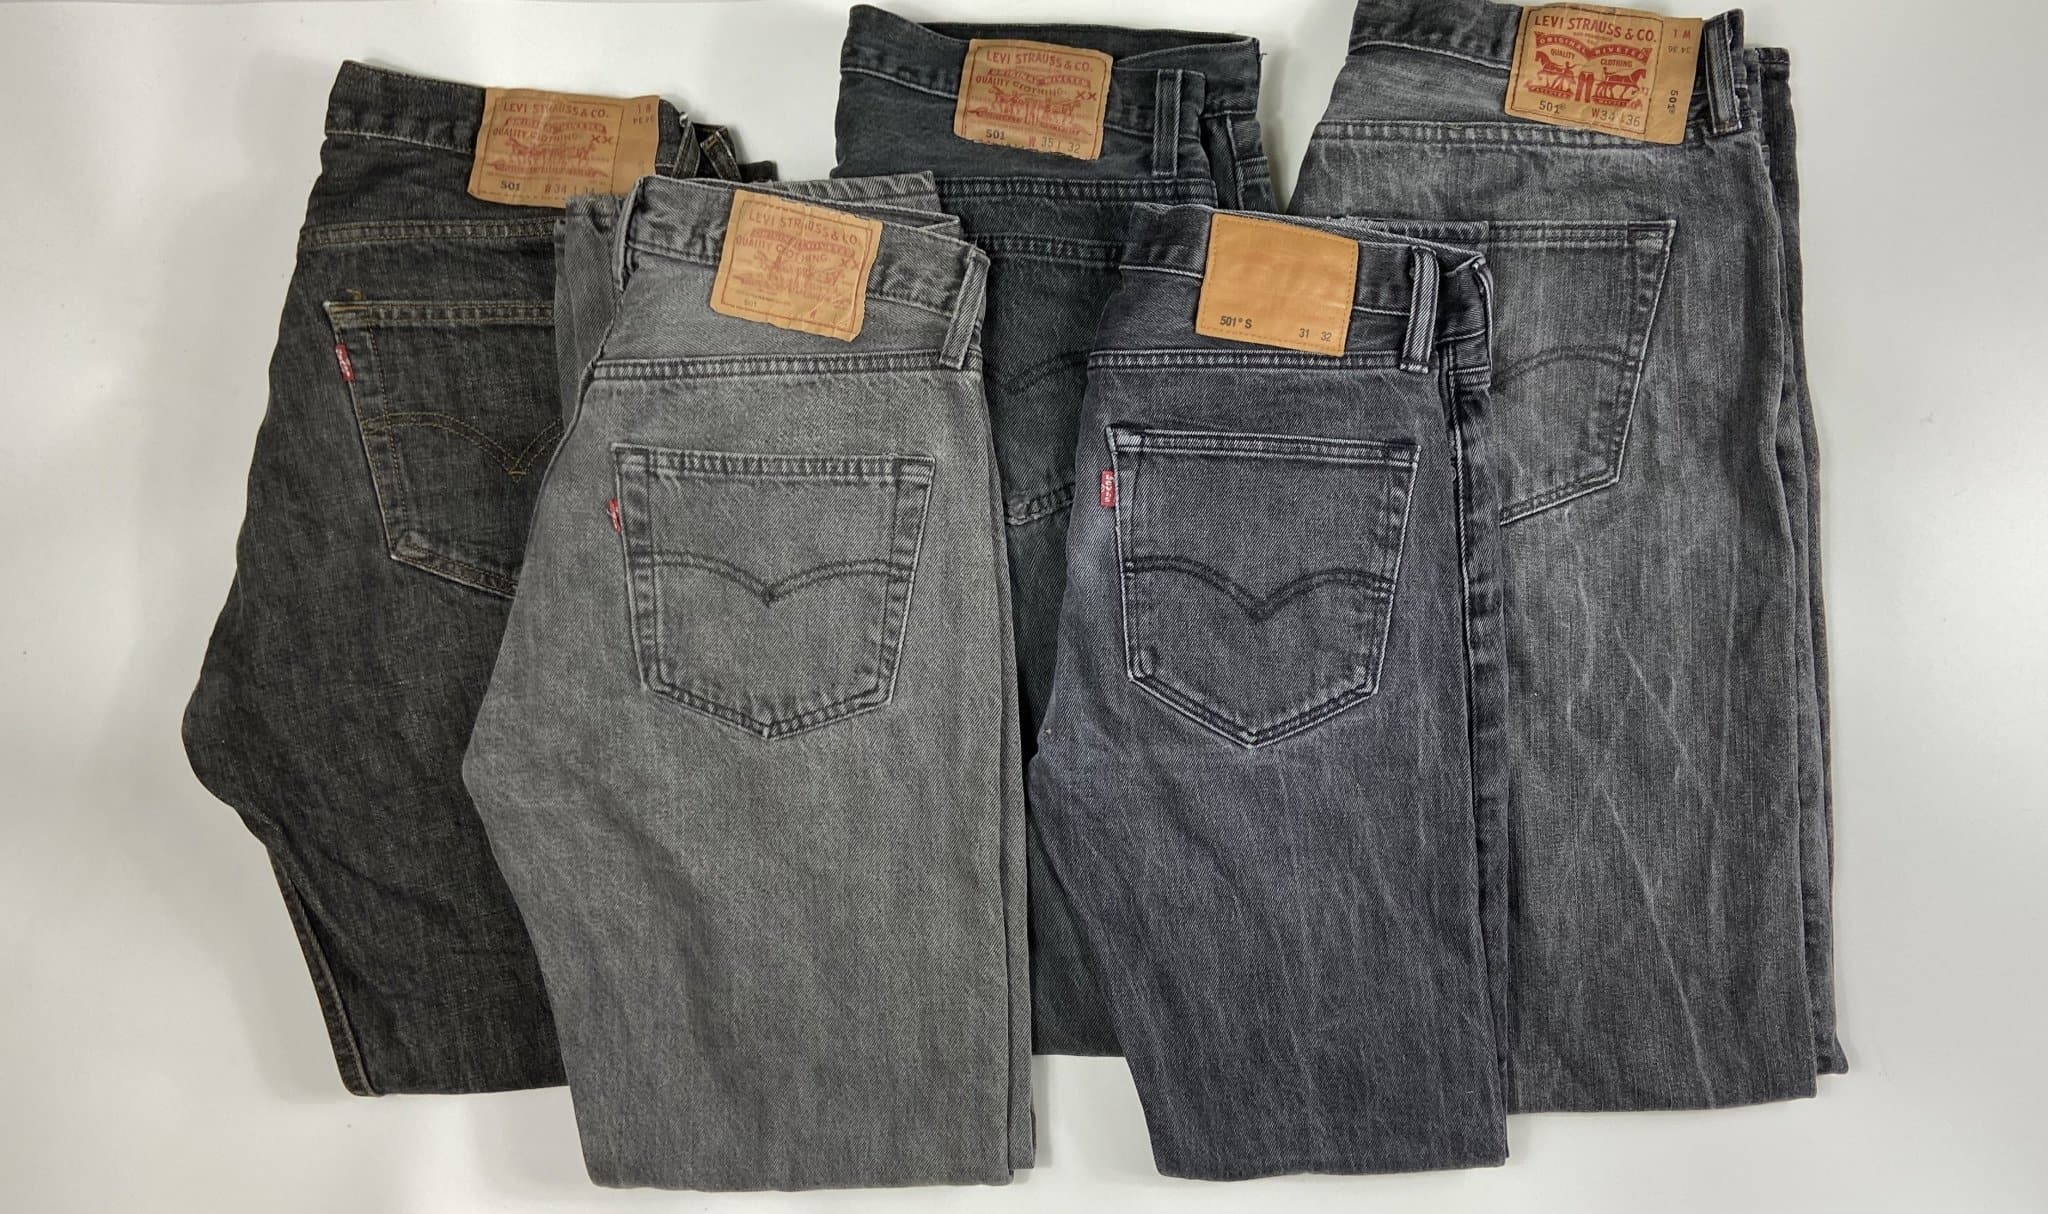 Vintage Levi's Classic 501 Jeans Dark Charcoal W34 L32 (DHLB2) - Discounted Deals UK